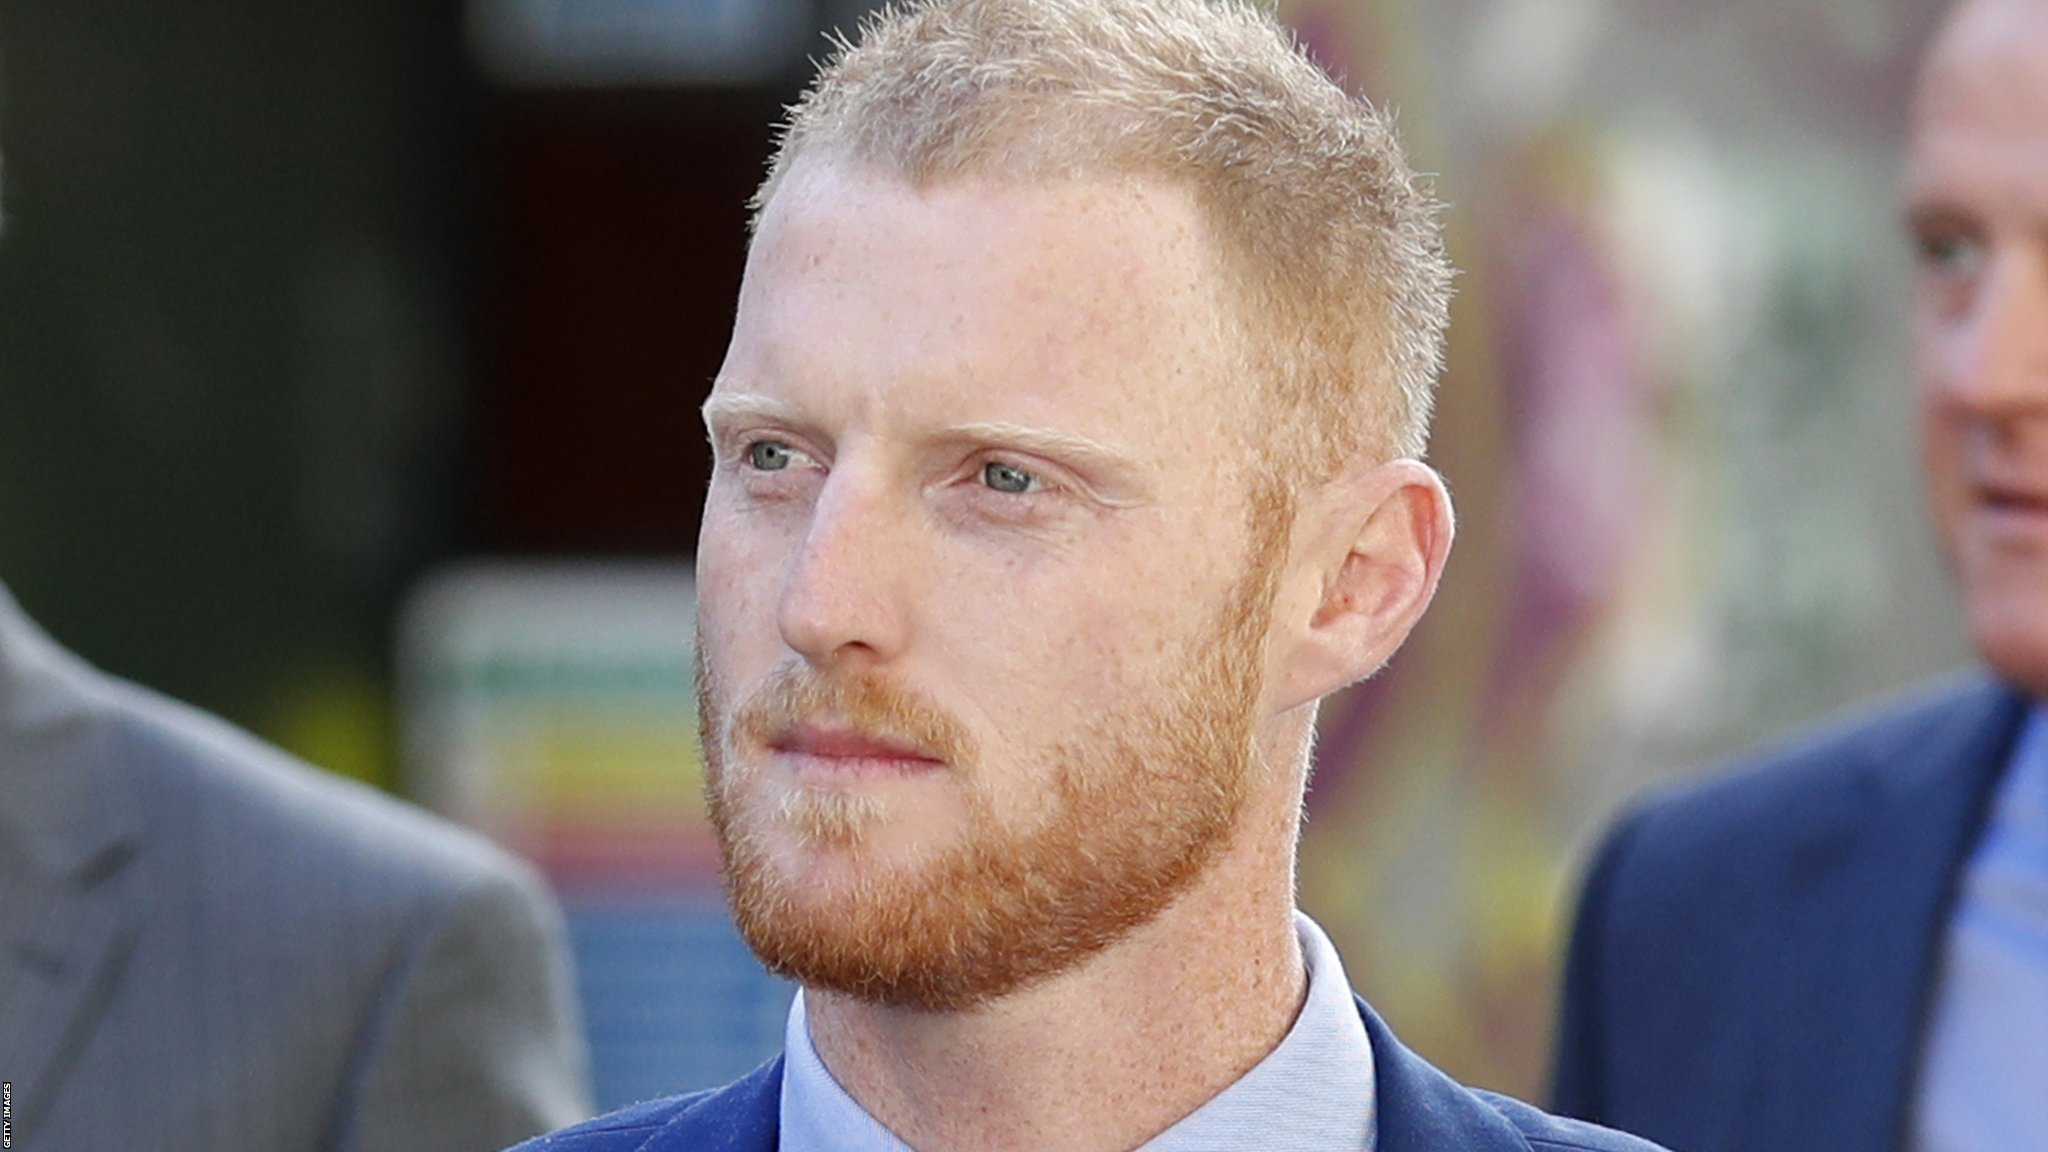 Stokes in England squad 'for his own wellbeing'